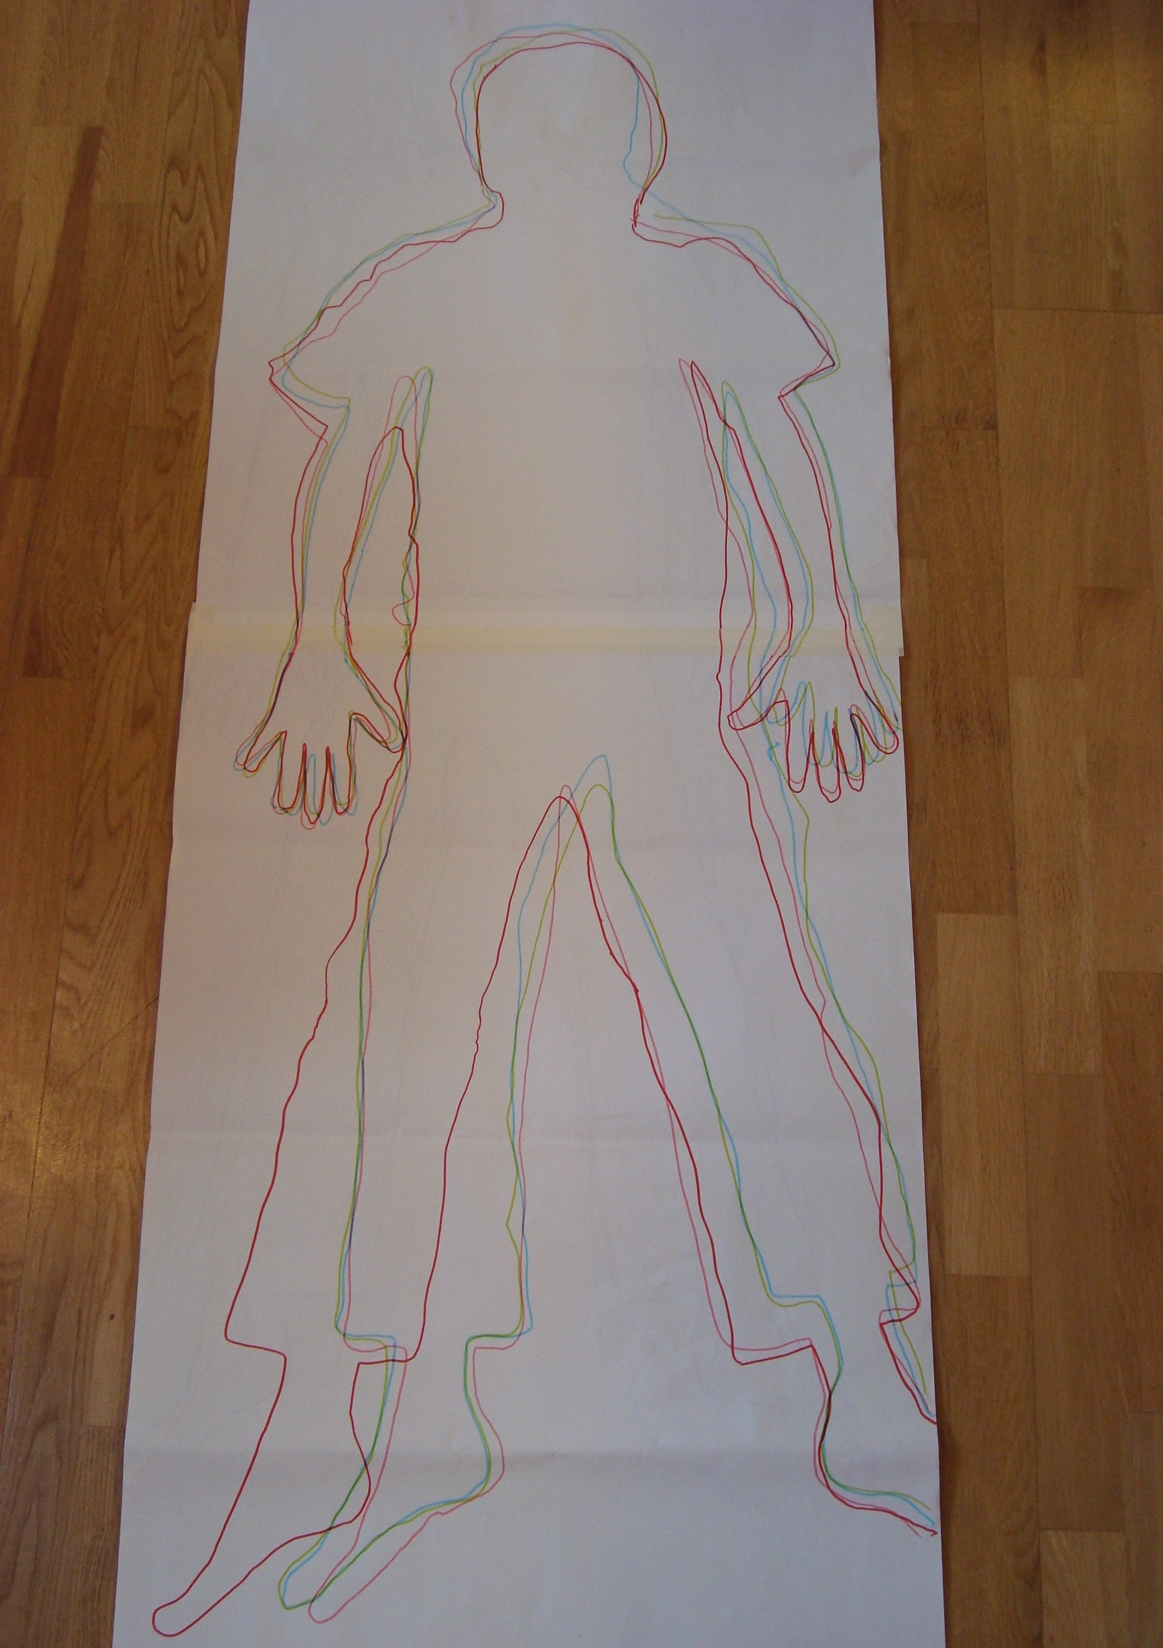 Using a body map to talk about emotional containment with a child